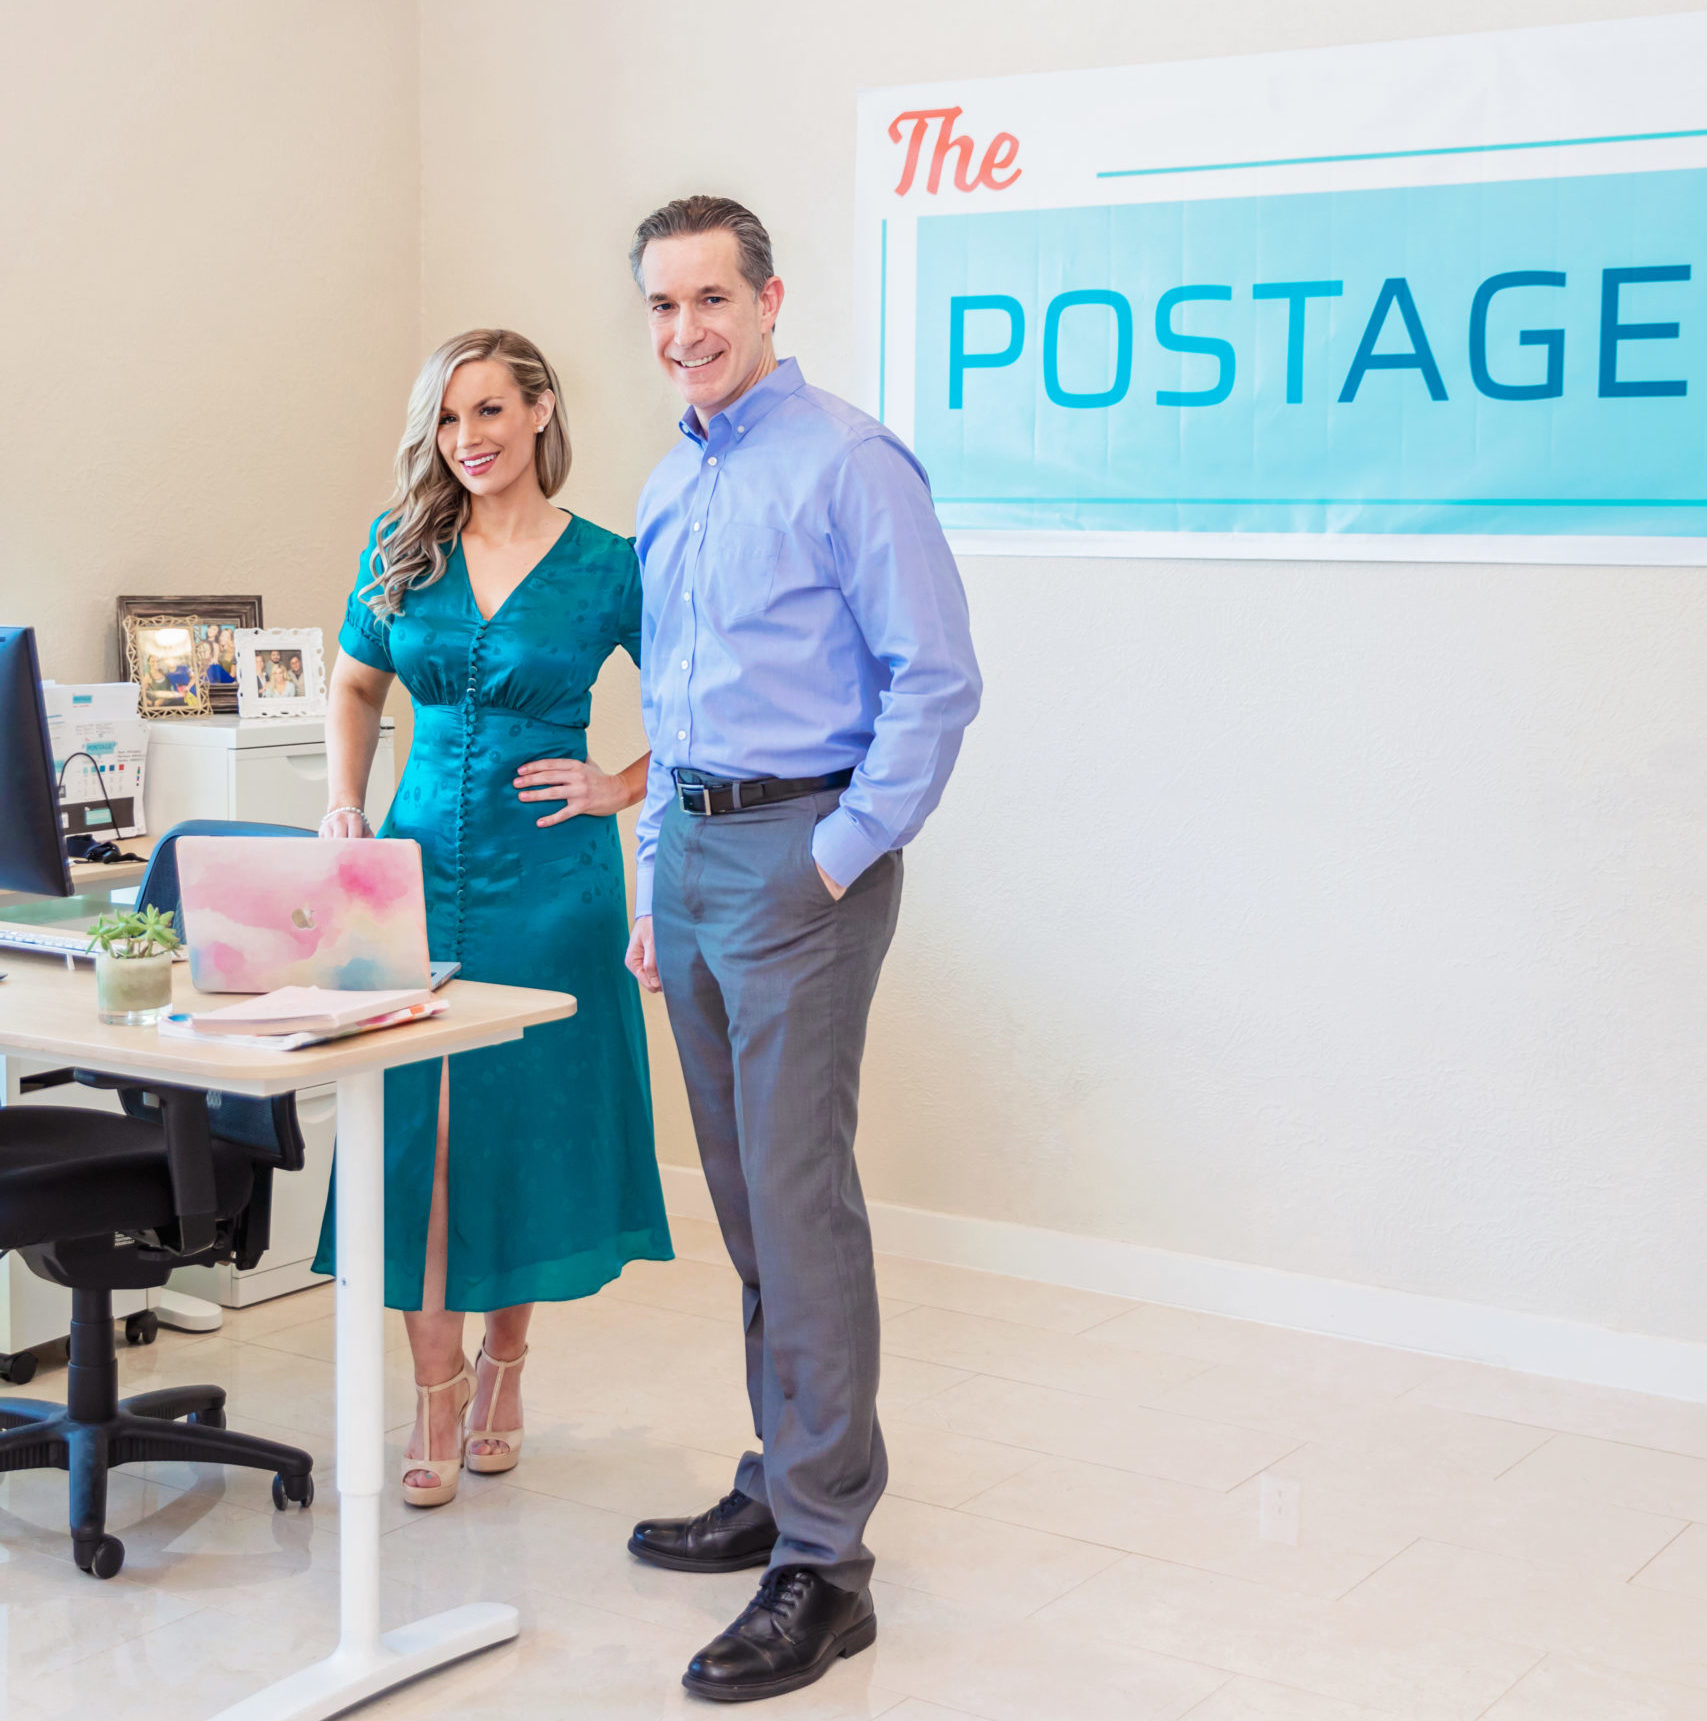 The Postage's CEO, Emily Cisek, and CTO, Ken Myers